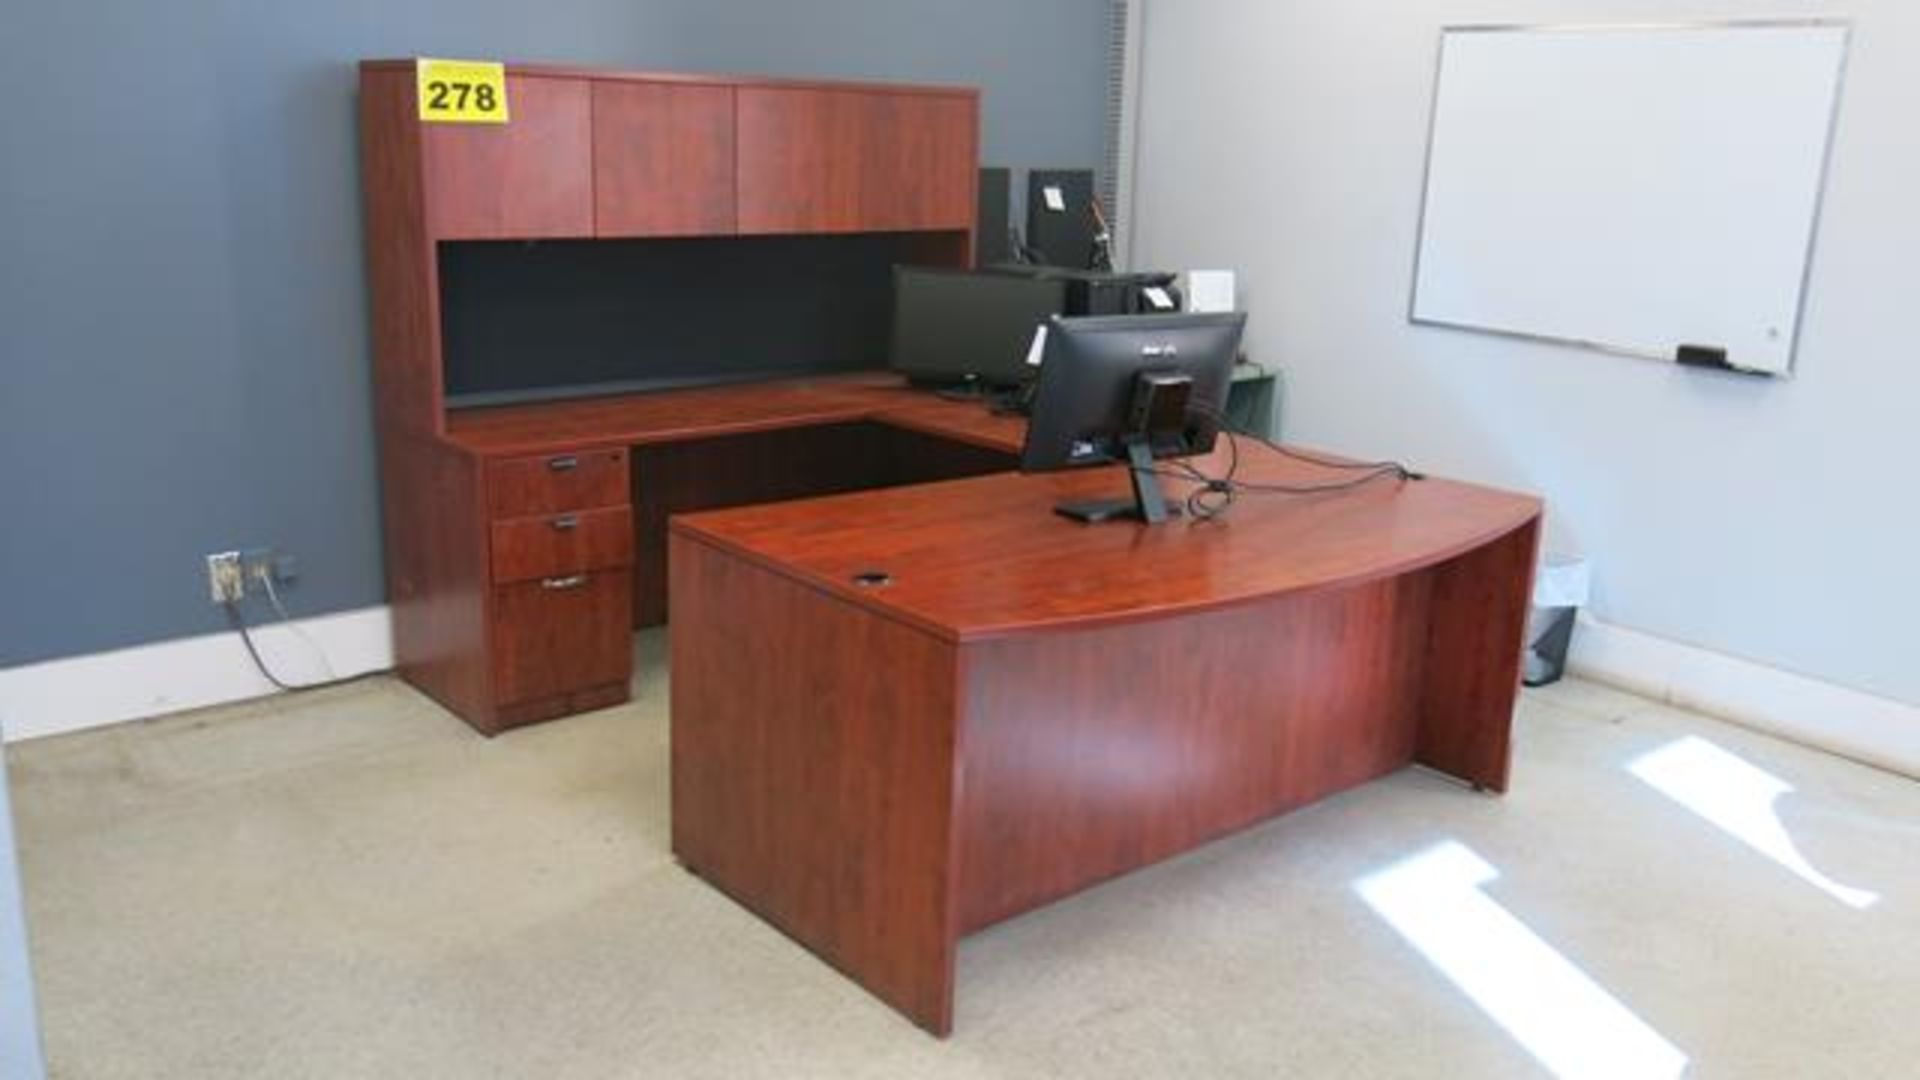 U-SHAPED, WOOD OFFICE DECK WITH FABRIC OFFICE CHAIR ON CASTERS